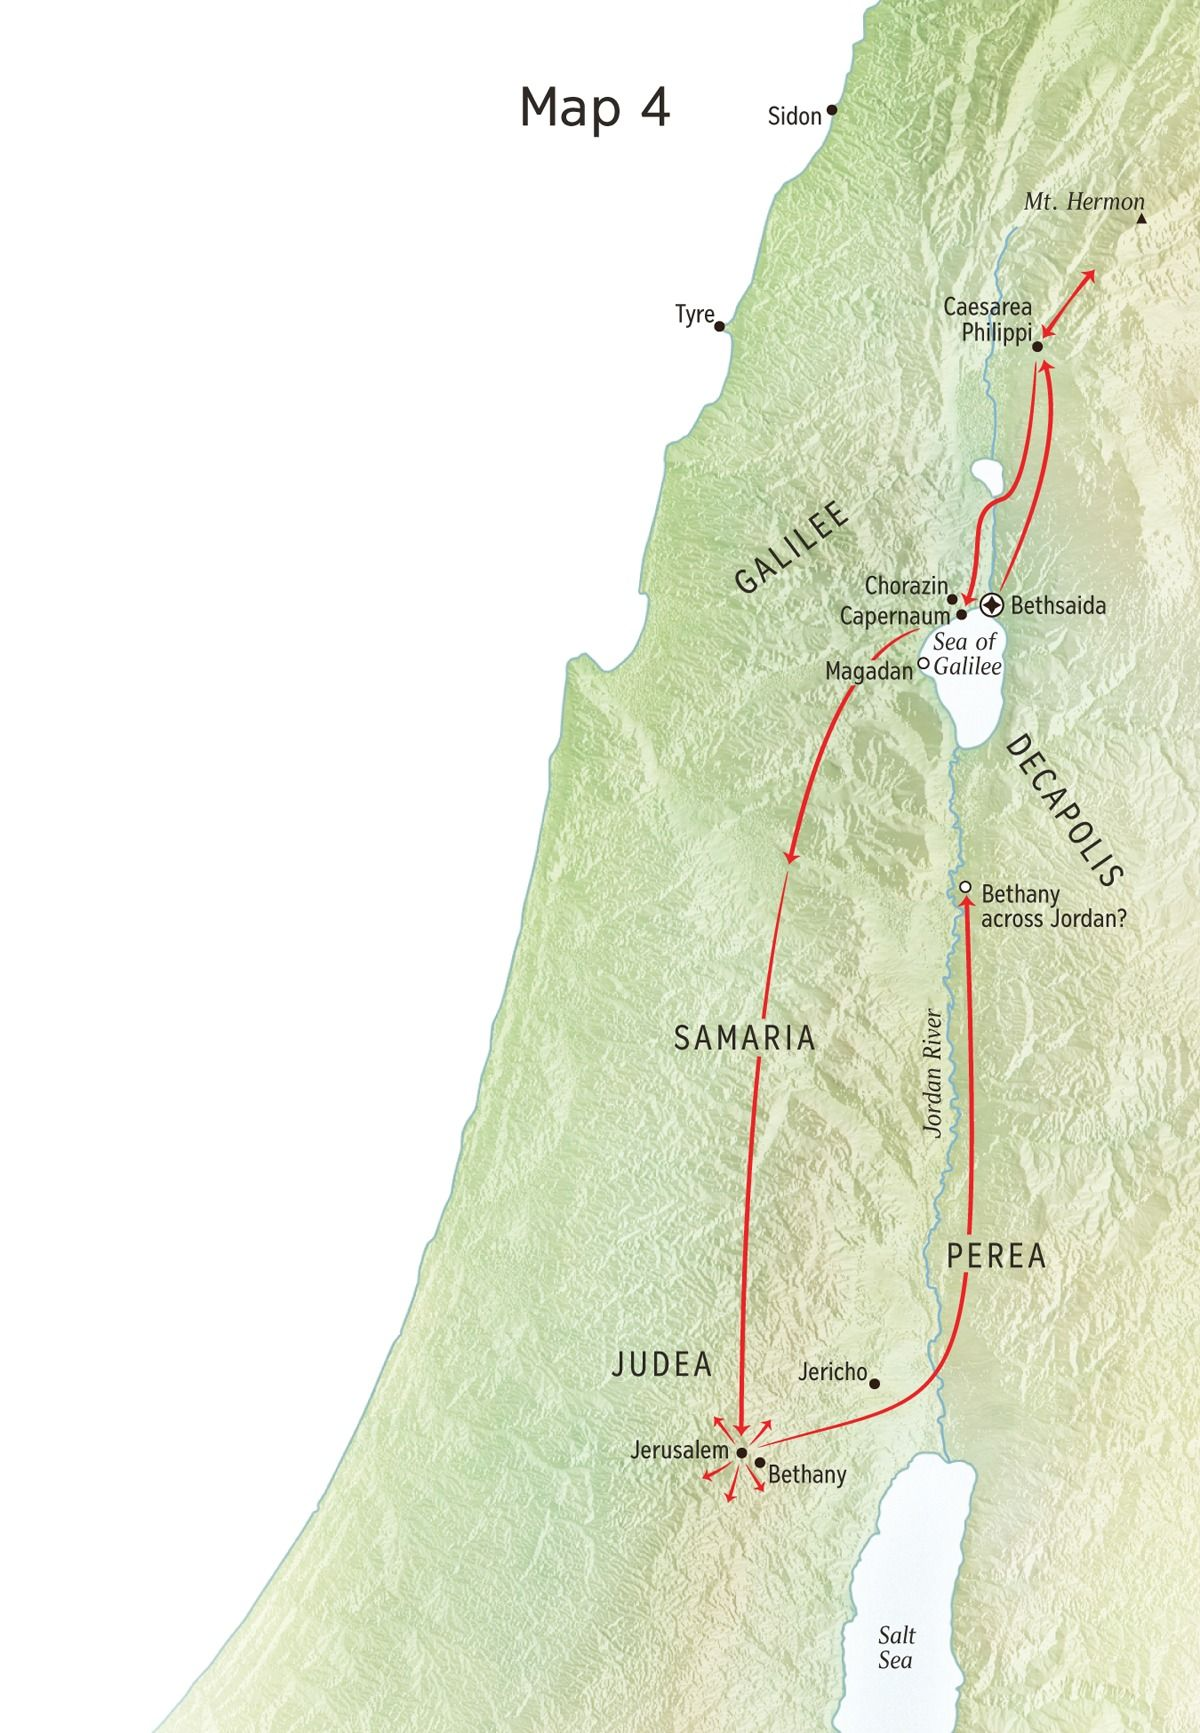 Jesus' Later Ministry in Judea (Chart and Map) | Bible Study ... on bible maps jerusalem, bible times map of scythia, bible road map, map of luke's ministry, map of john the baptist ministry, bible palestine map, jusus ministry,